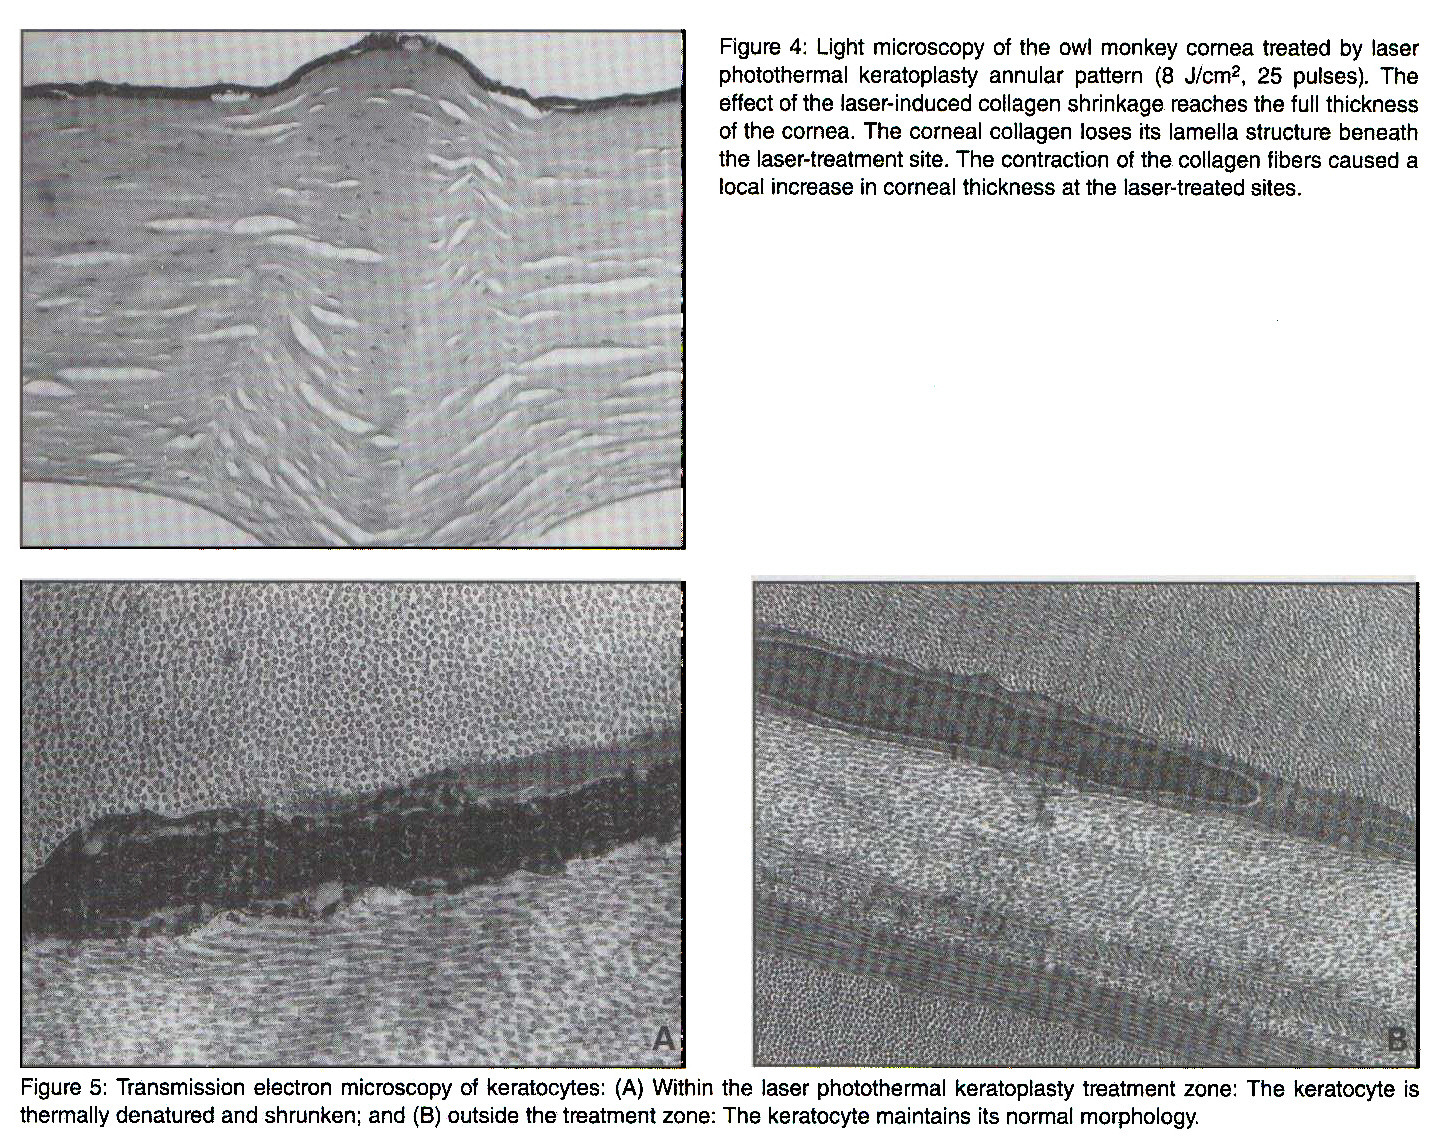 Figure 4: Light microscopy of the owl monkey cornea treated by laser photothermal keratoplasty annular pattern (8 J/cmp 2, 25 pulses). The effect of the laser-induced collagen shrinkage reaches the full thickness of the cornea. The corneal collagen loses its lamella structure beneath the laser-treatment site. The contraction of the collagen fibers caused a local increase in corneal thickness at the laser-treated sites.Figure 5: Transmission electron microscopy of keratocytes: (A) Within the laser photothermal keratoplasty treatment zone: The keratocyte is thermally denatured and shrunken; and (B) outside the treatment zone: The keratocyte maintains its normal morphology.